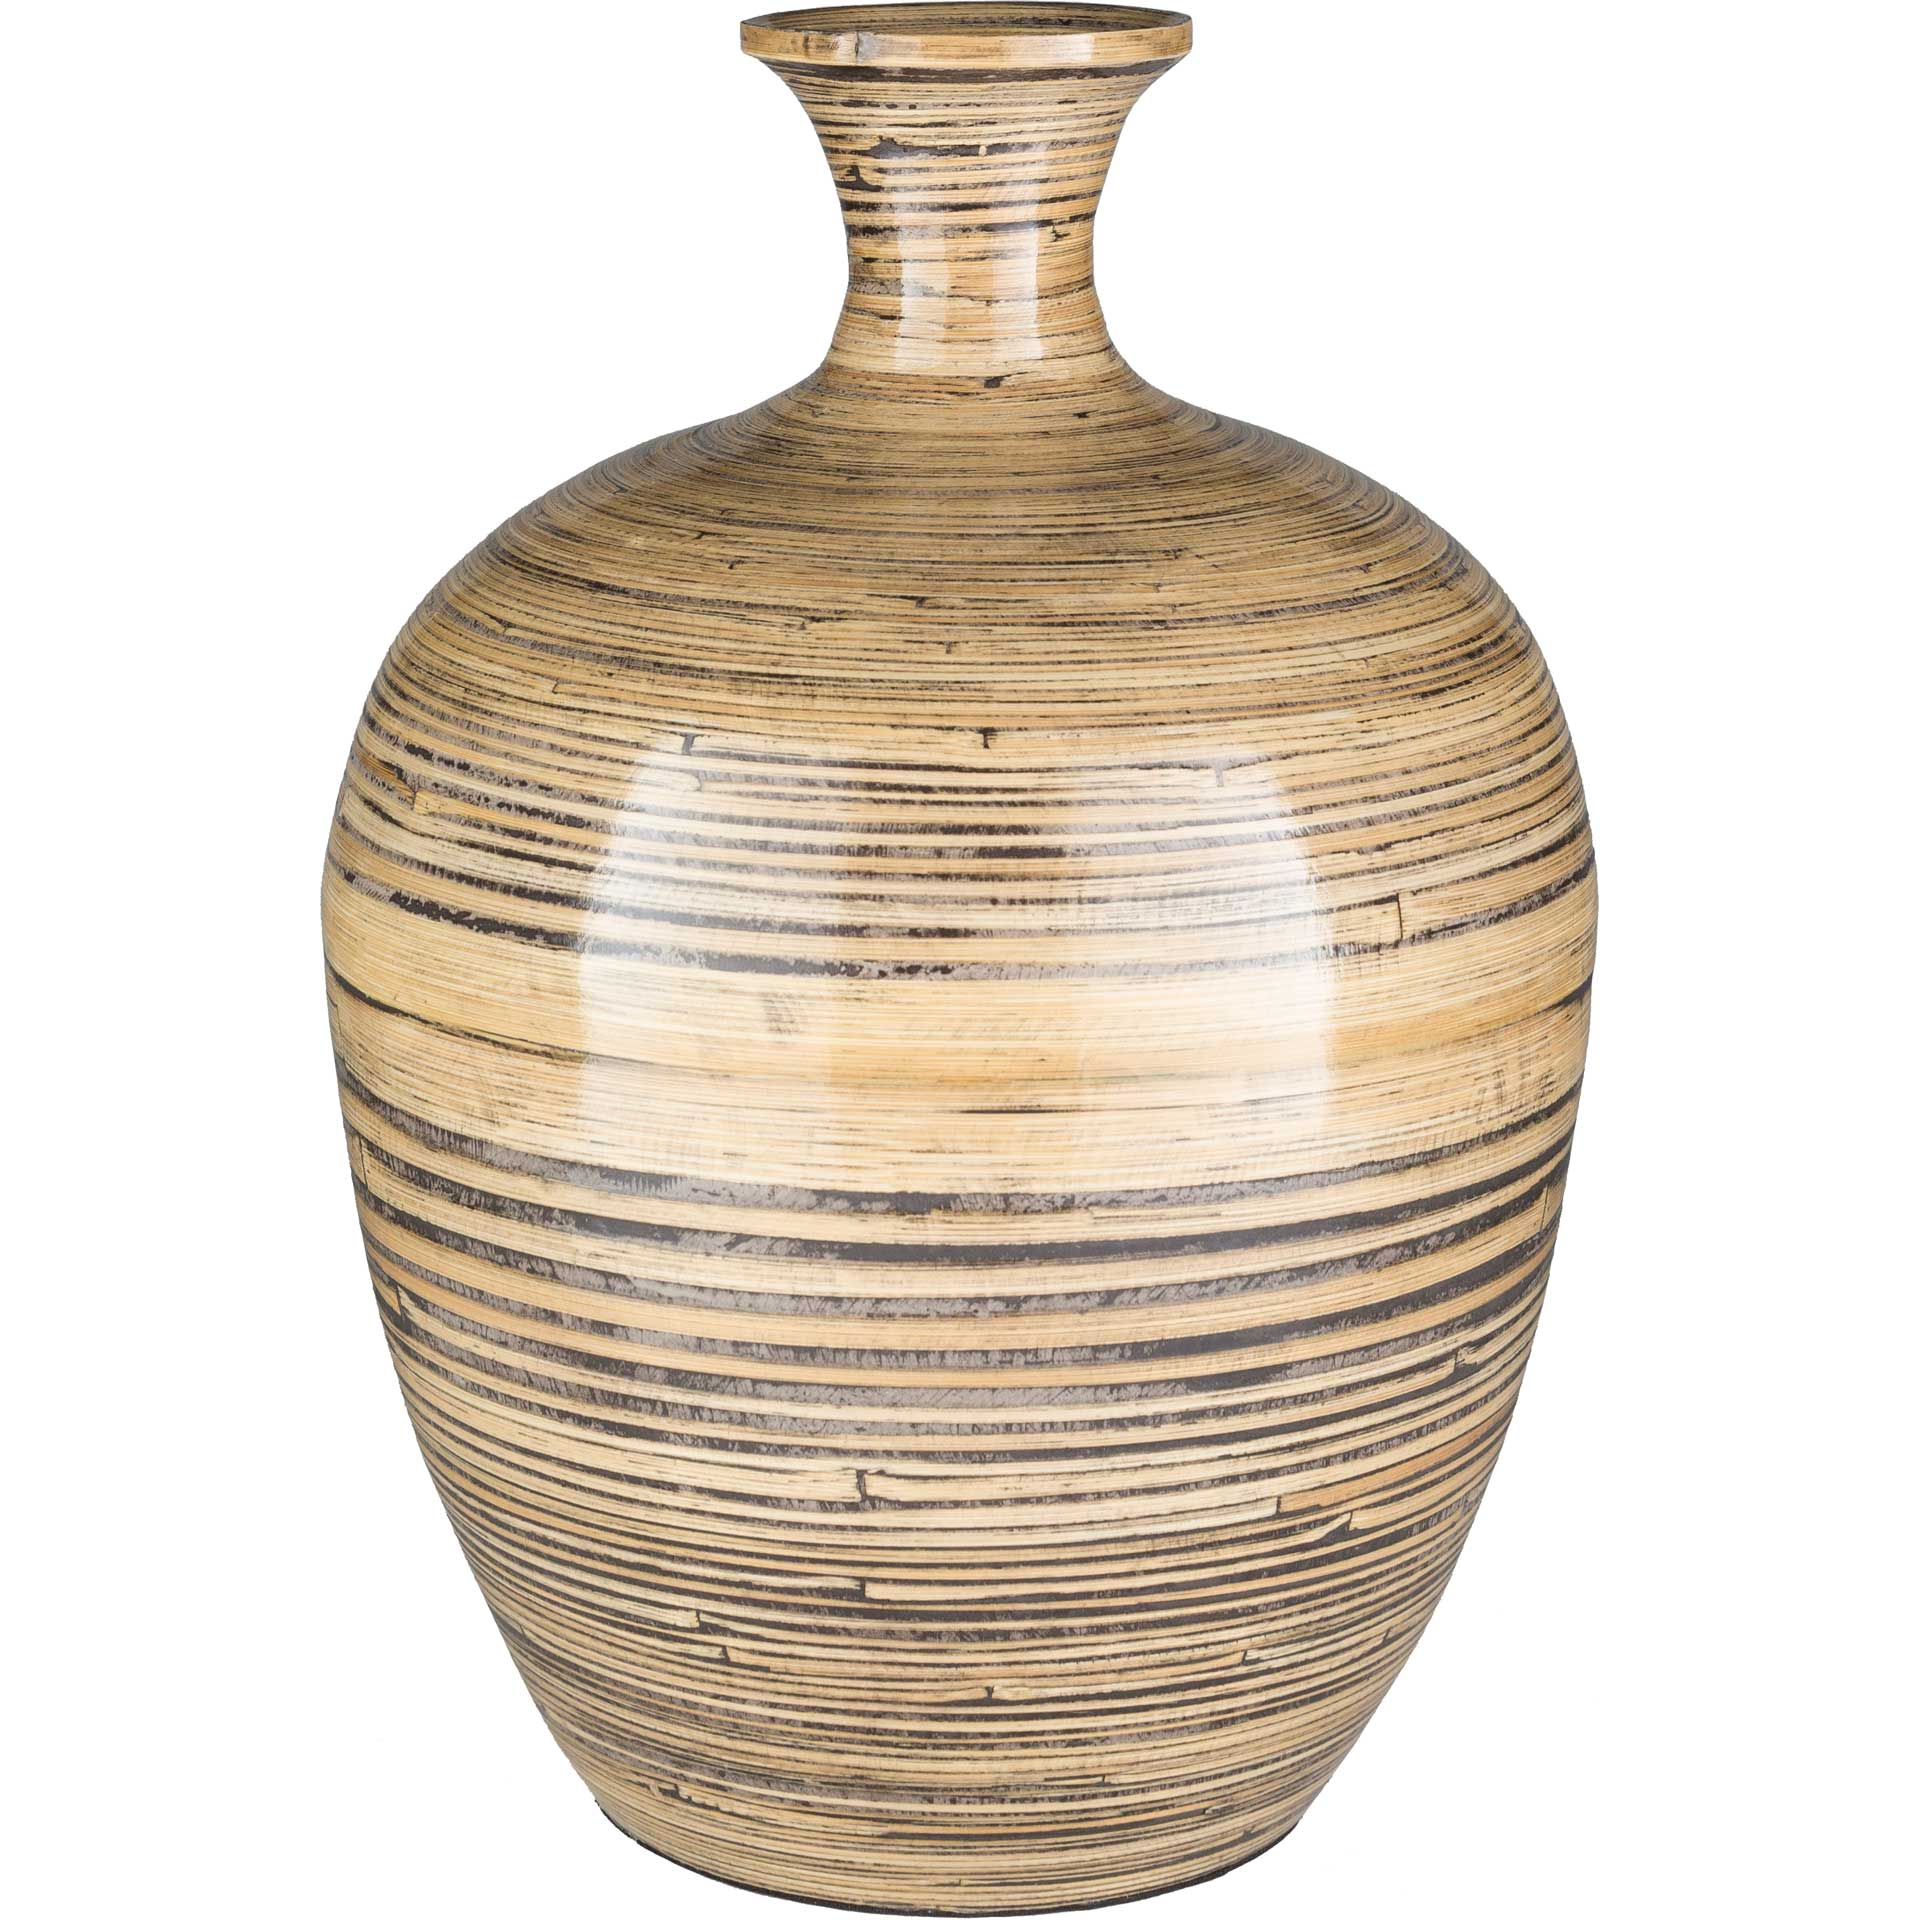 Cordin Garden Vase Natural Small